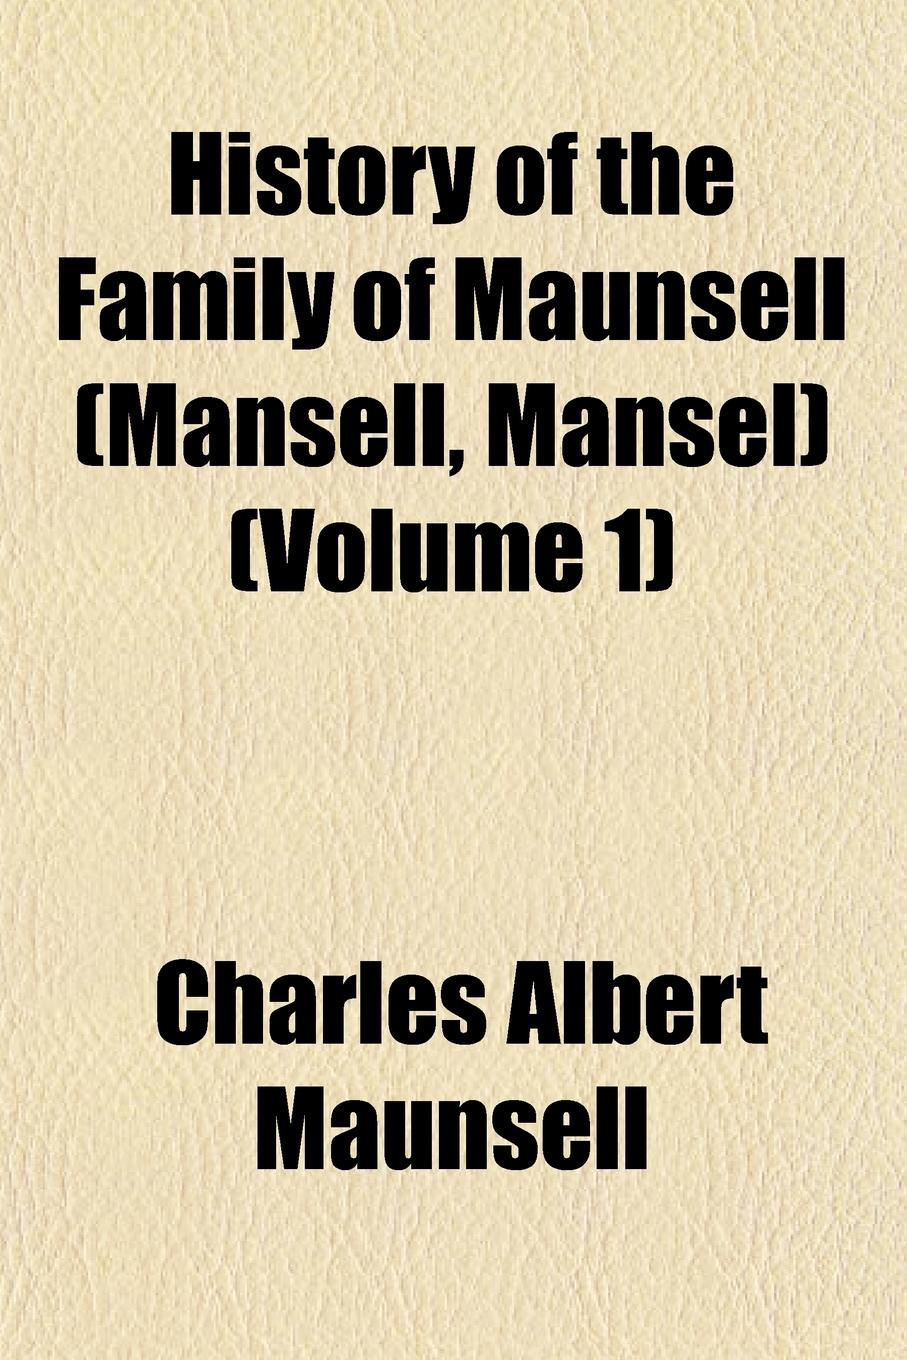 Charles Albert Maunsell History of the Family of Maunsell (Mansell, Mansel) (Volume 1) free shipping kayipht cm400ha1 24h can directly buy or contact the seller